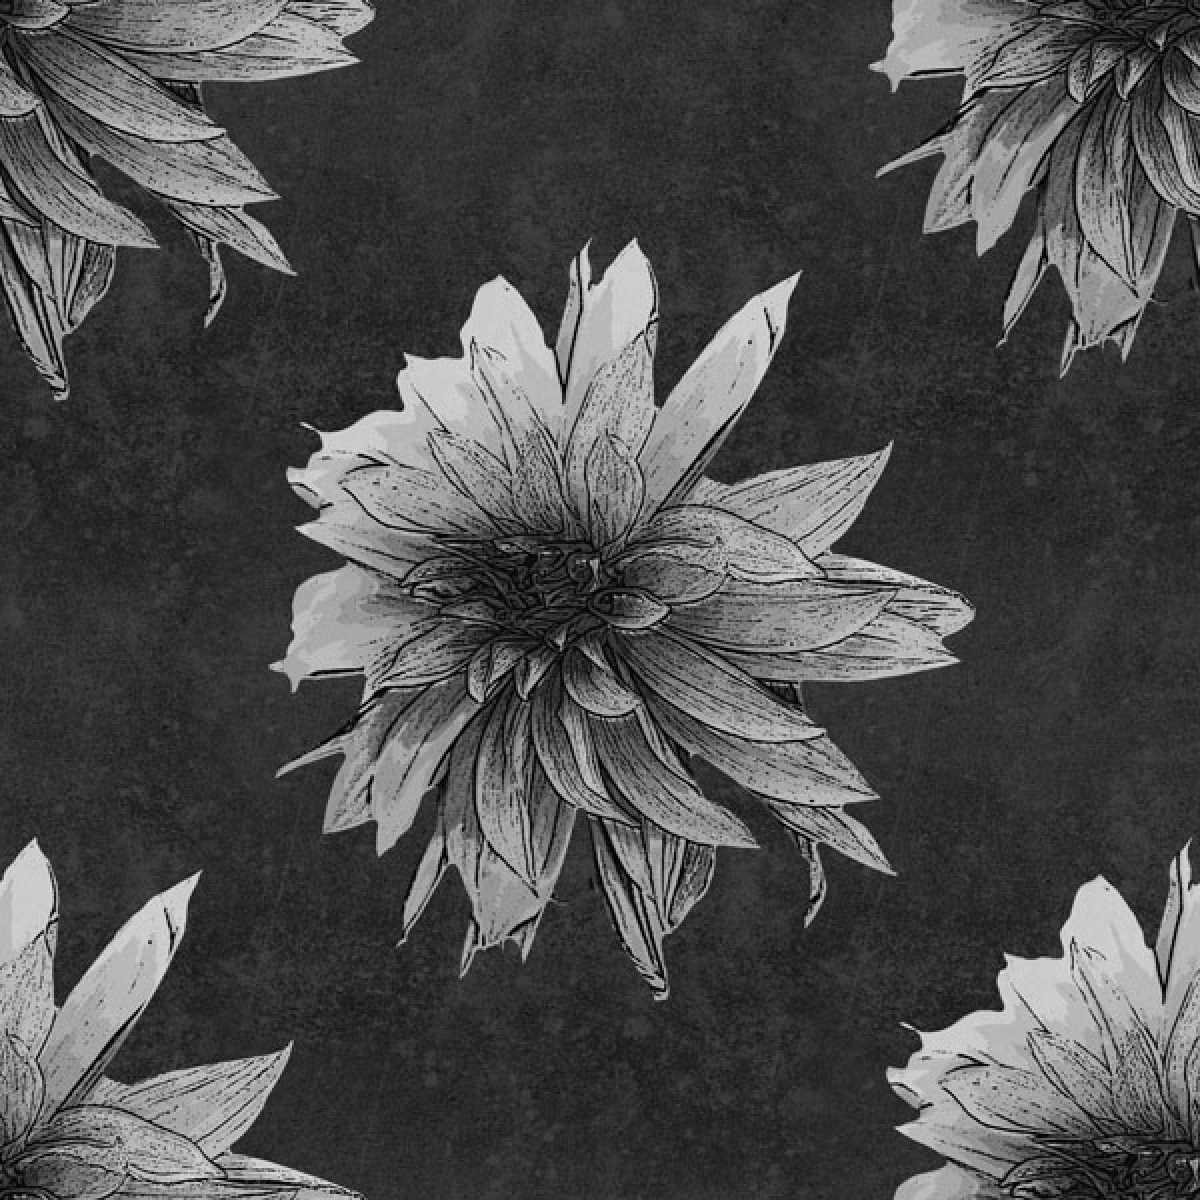 Dahlia antique - schwarz